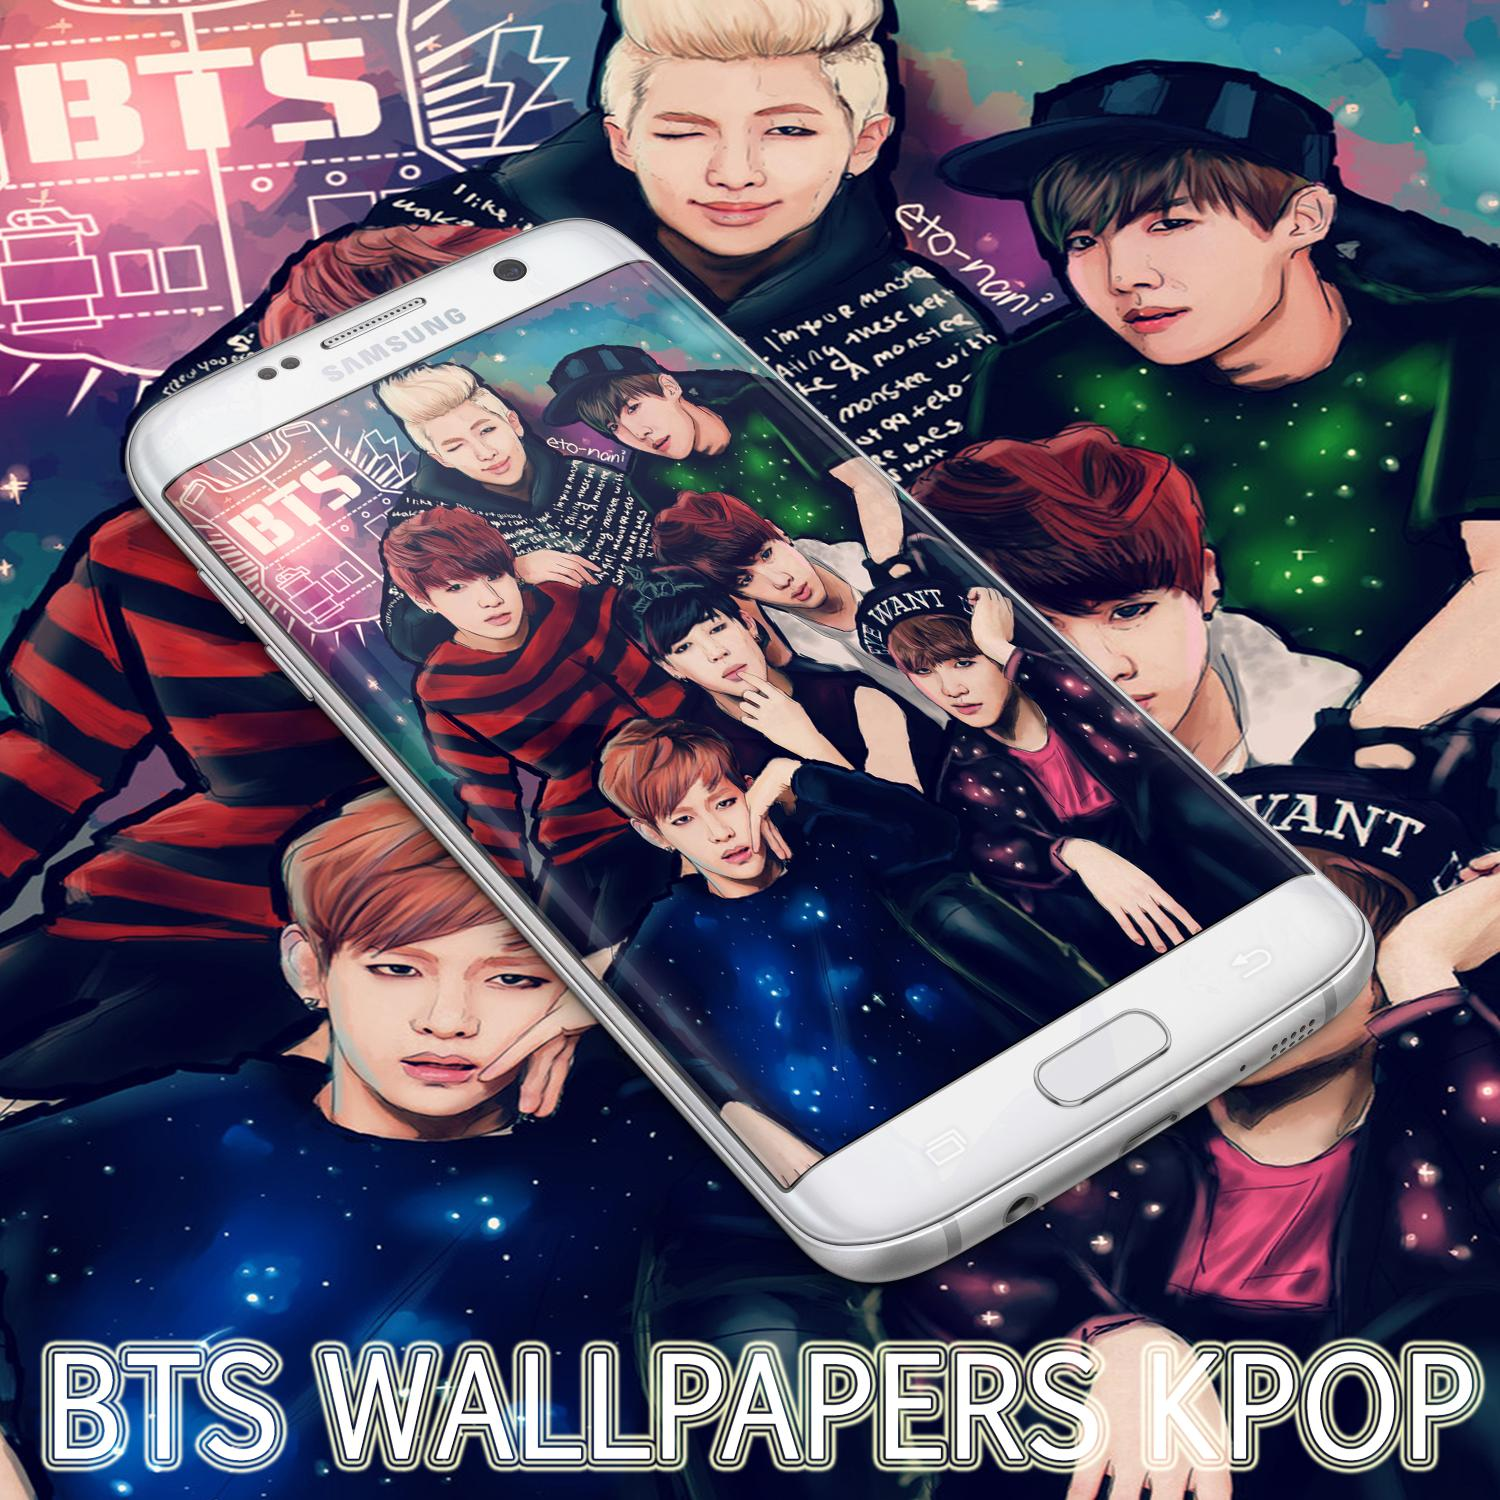 Bts Wallpapers Kpop Ultra Hd 2018 For Android Apk Download